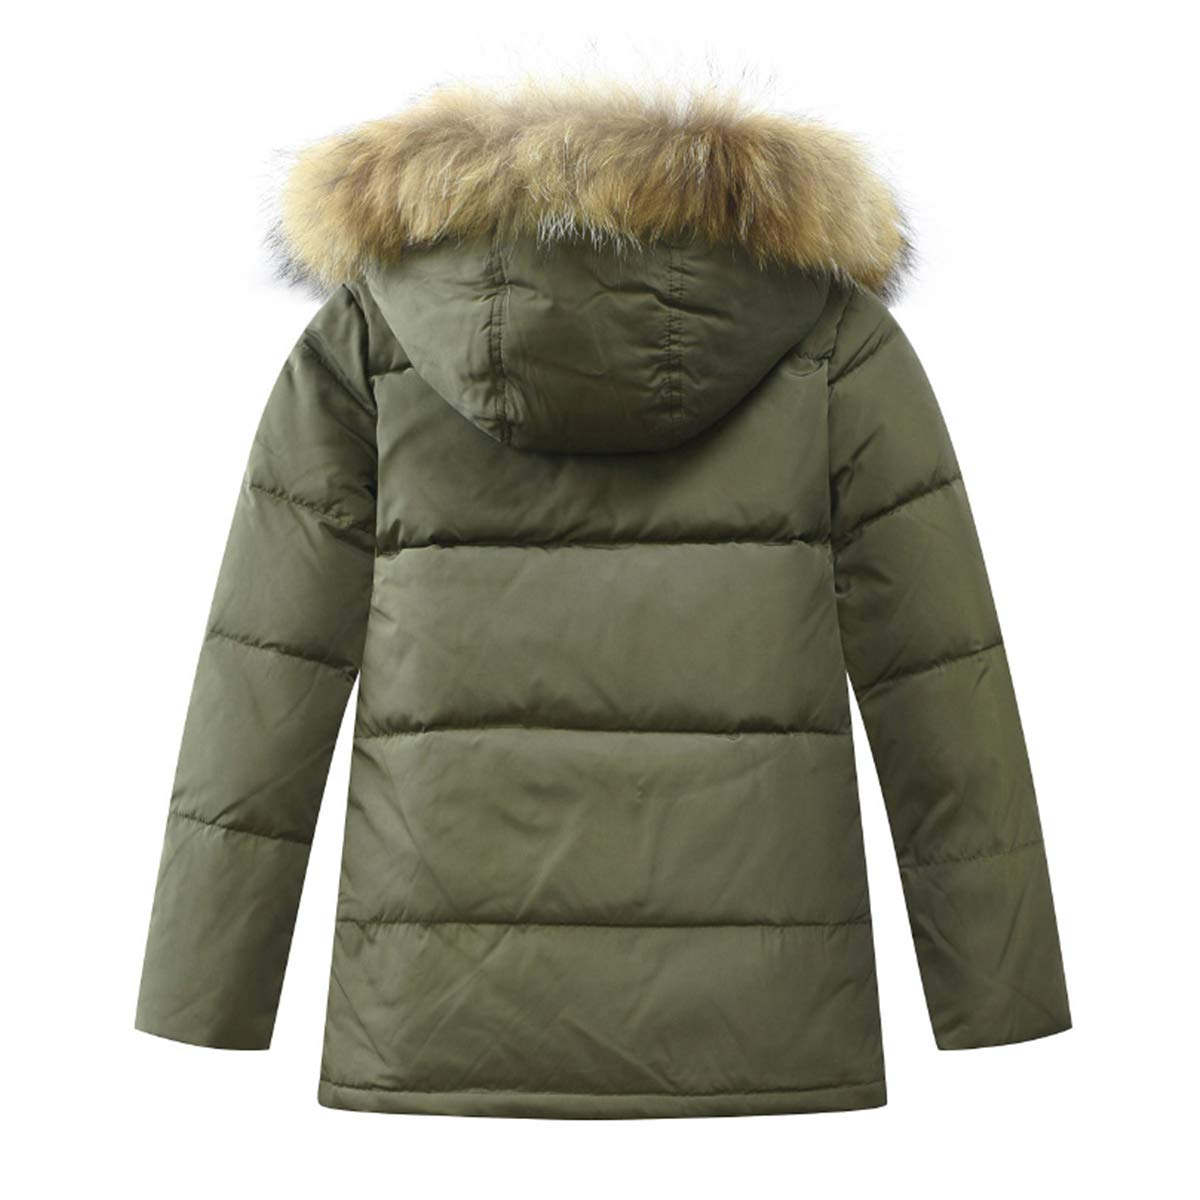 ac8ed6823cb1d Amazon.com  LISUEYNE Boys Kids Winter Hooded Down Coat Puffer Jacket for  Big Boys Mid-Long  Clothing